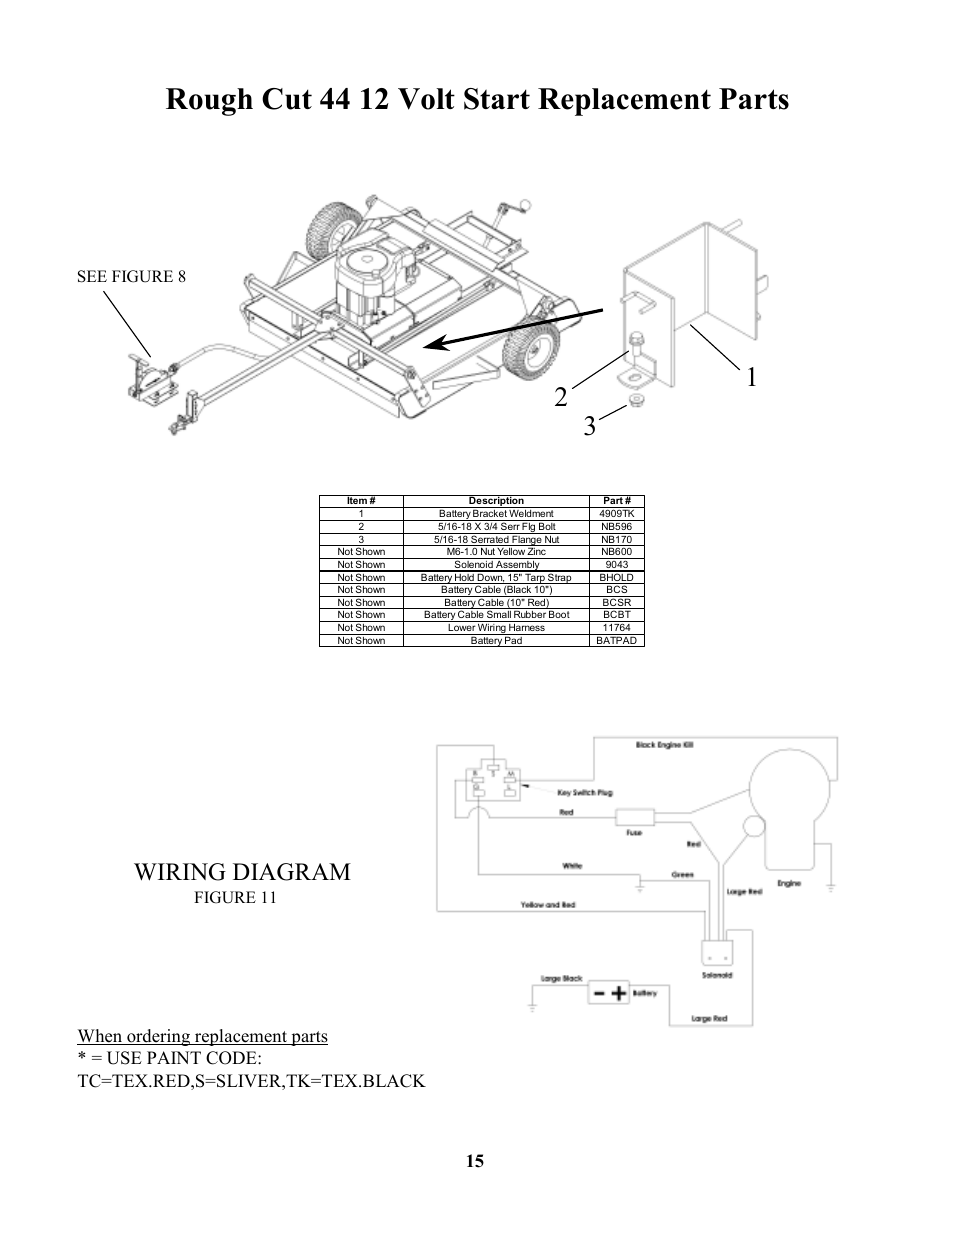 medium resolution of rough cut 44 12 volt start replacement parts wiring diagram seerough cut 44 12